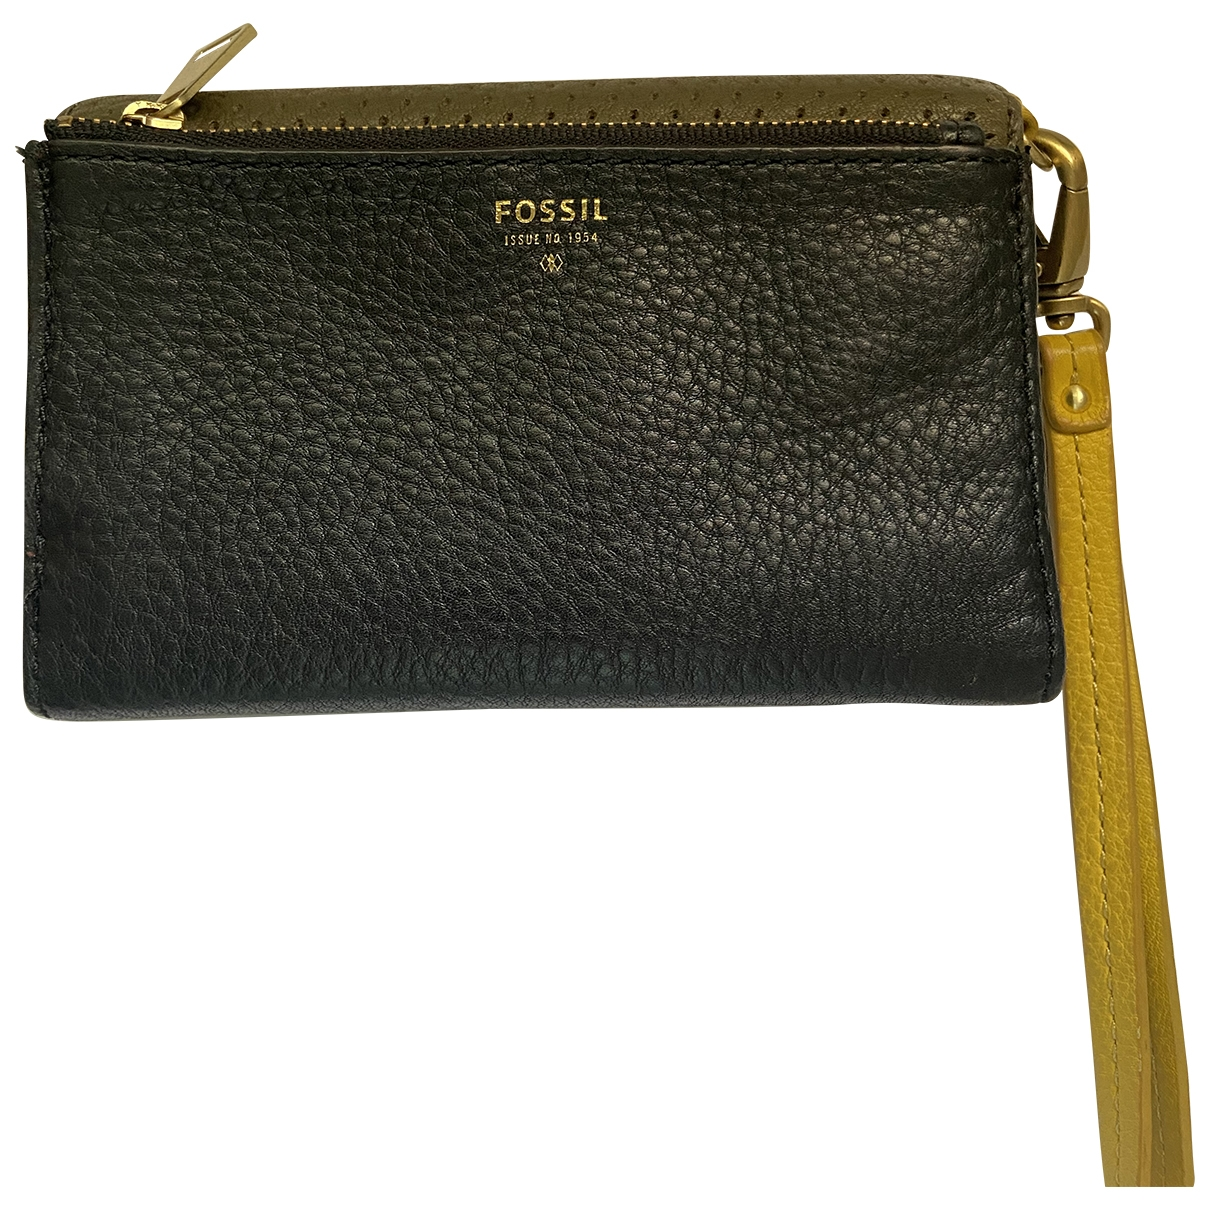 Fossil \N Black Leather wallet for Women \N